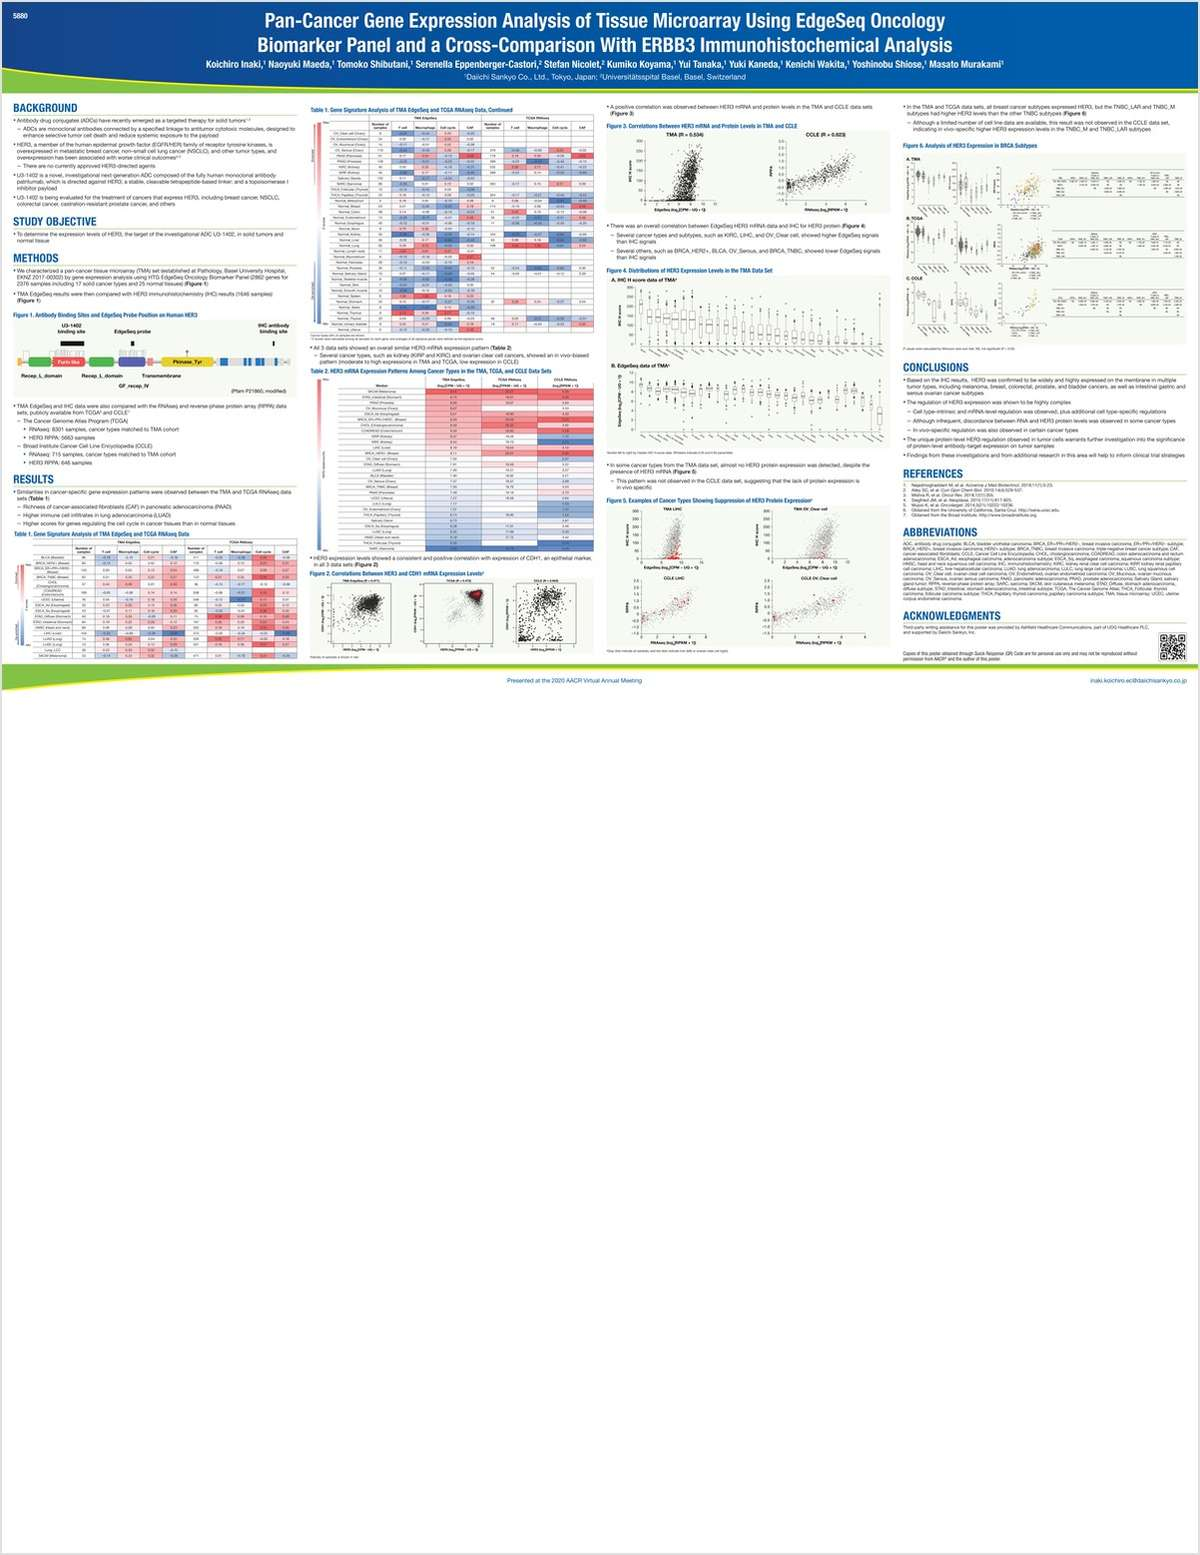 Pan-Cancer Gene Expression Analysis of Tissue Microarray Using EdgeSeq Oncology Biomarker Panel and a Cross-Comparison with ERBB3 Immunohistochemical Analysis